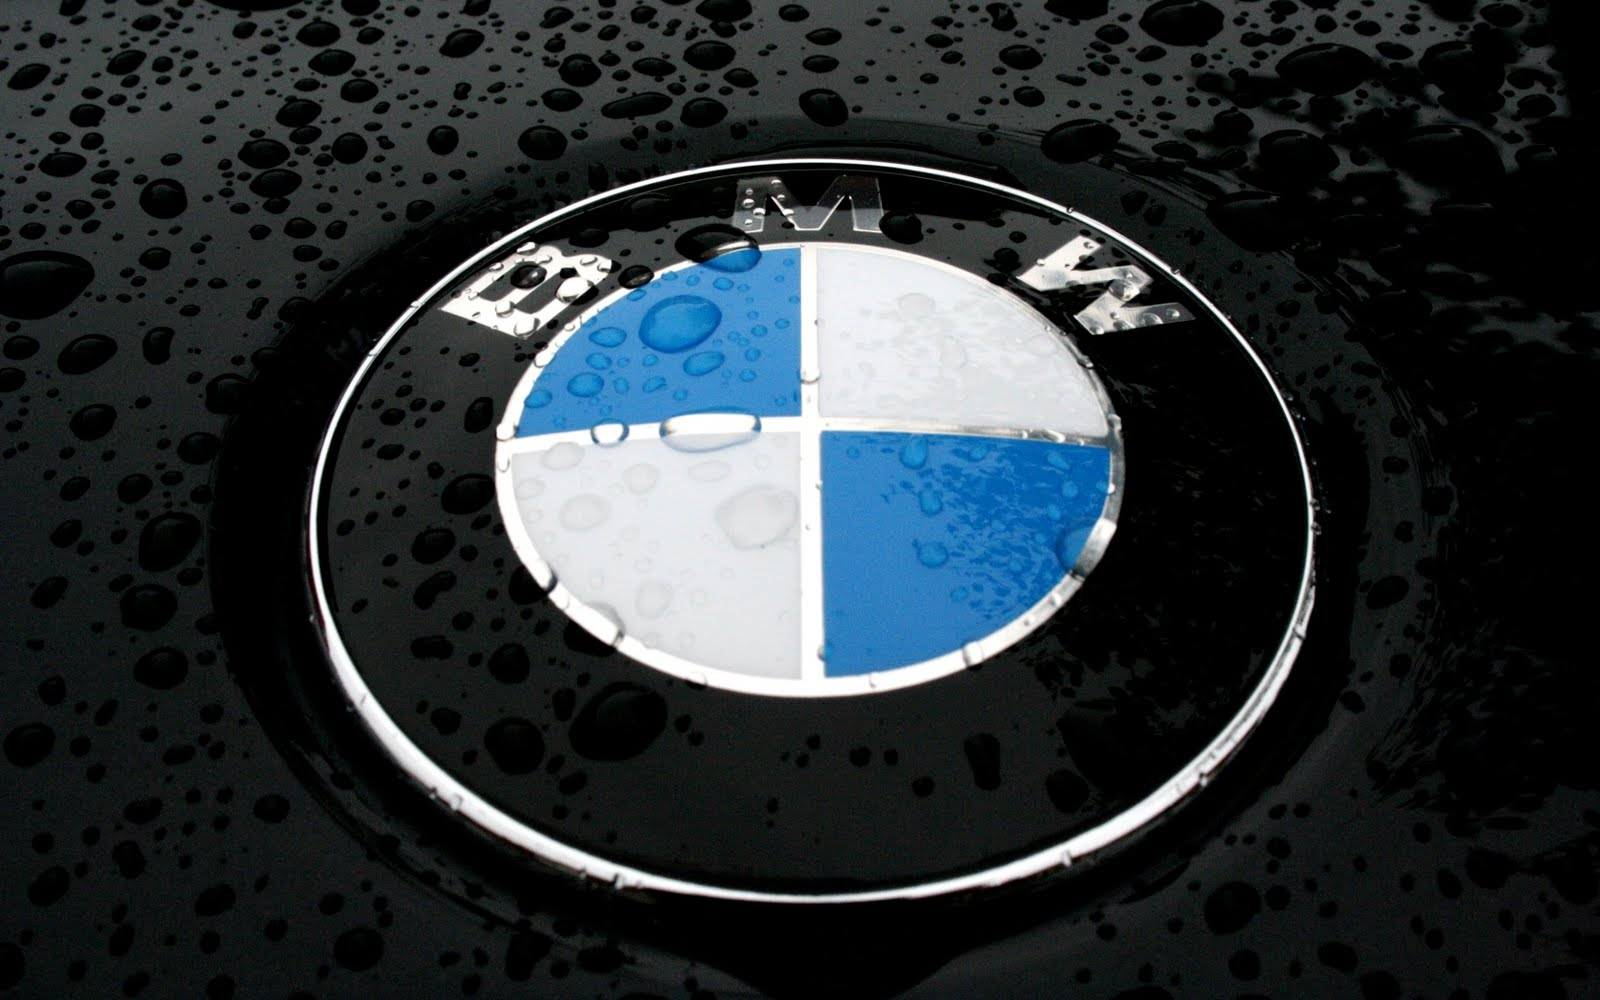 http://4.bp.blogspot.com/-JSsQv-Fha1E/TjHUQSLMwcI/AAAAAAAADbk/pwS4rhKwvGQ/s1600/Bmw+badge+logo+hd+widescreen+wallpaper.jpg